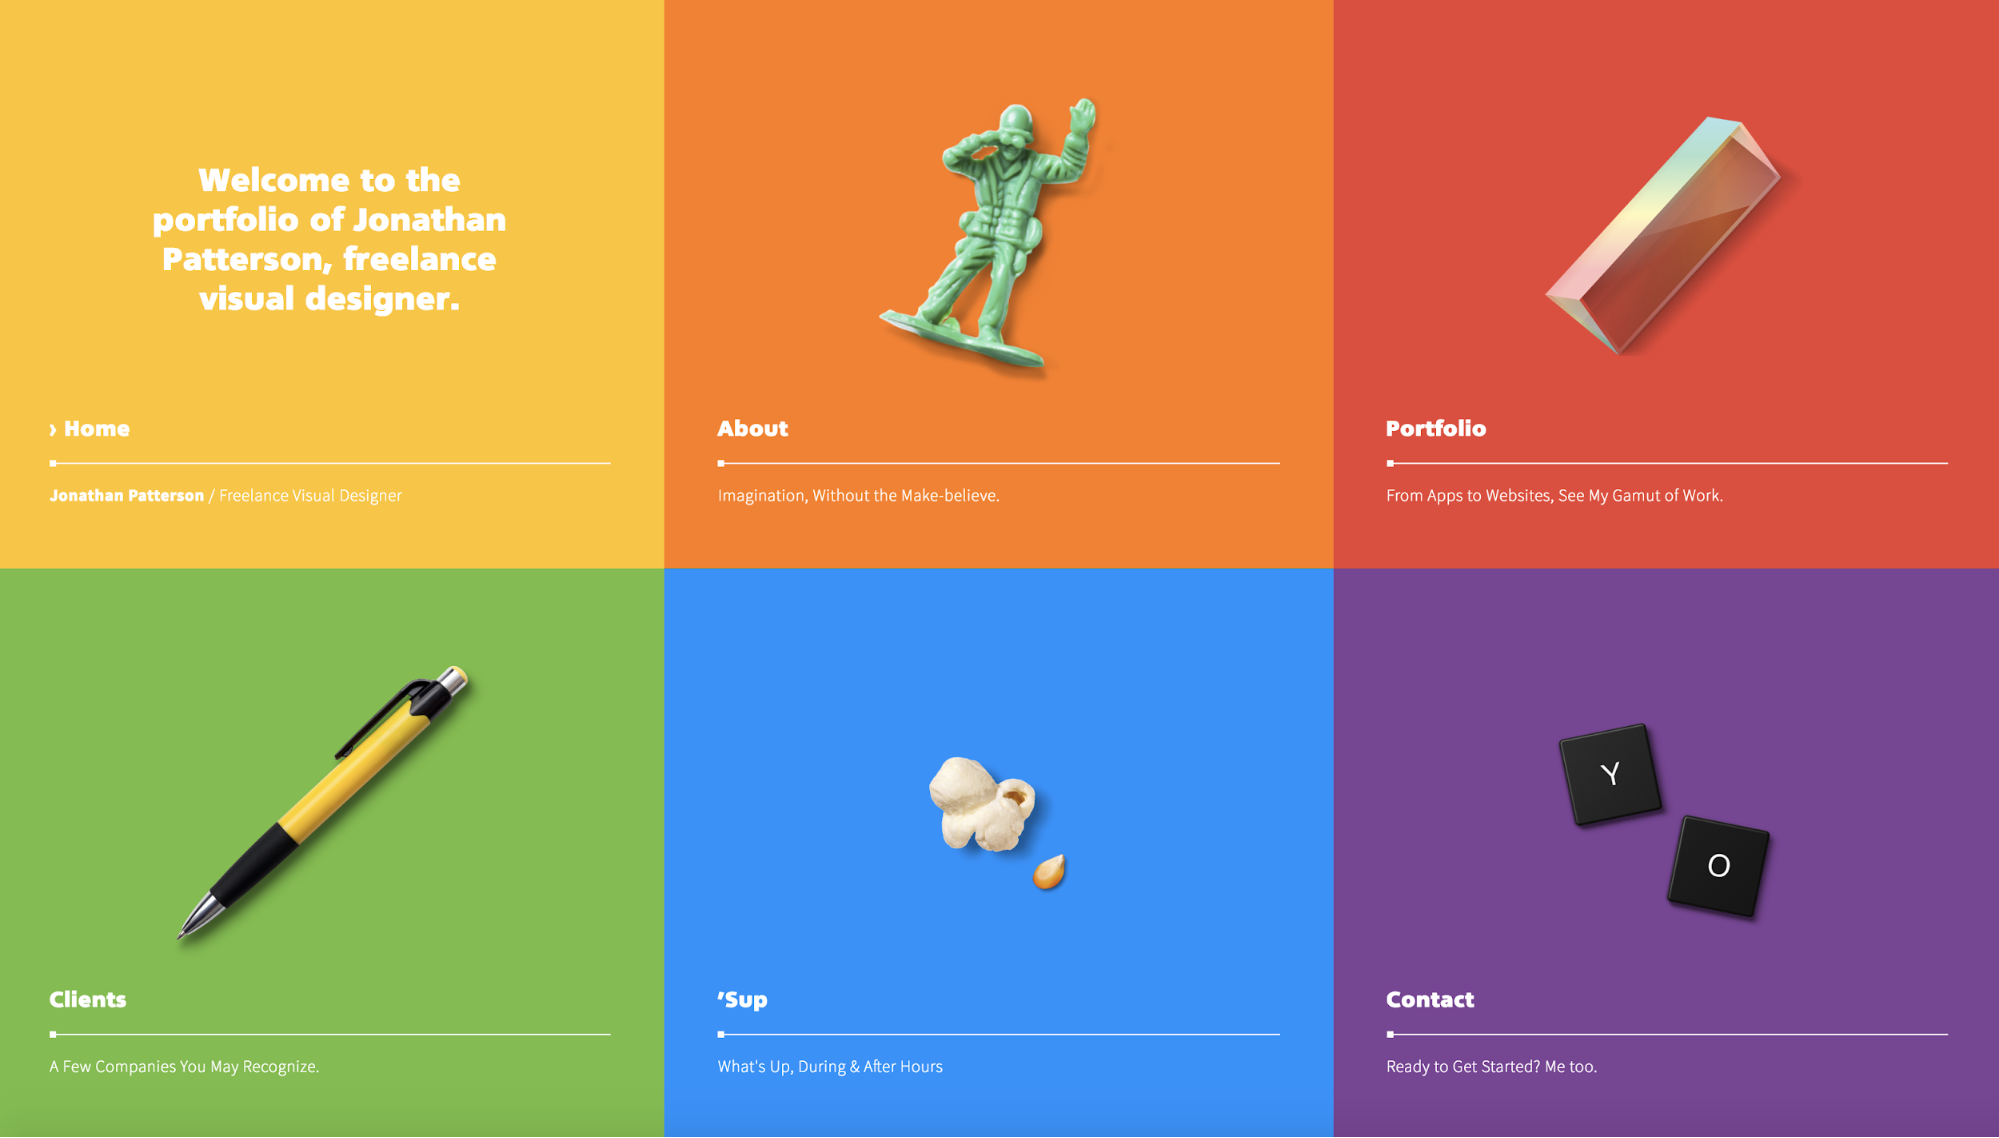 9 inspiring portfolios and insights from the designers